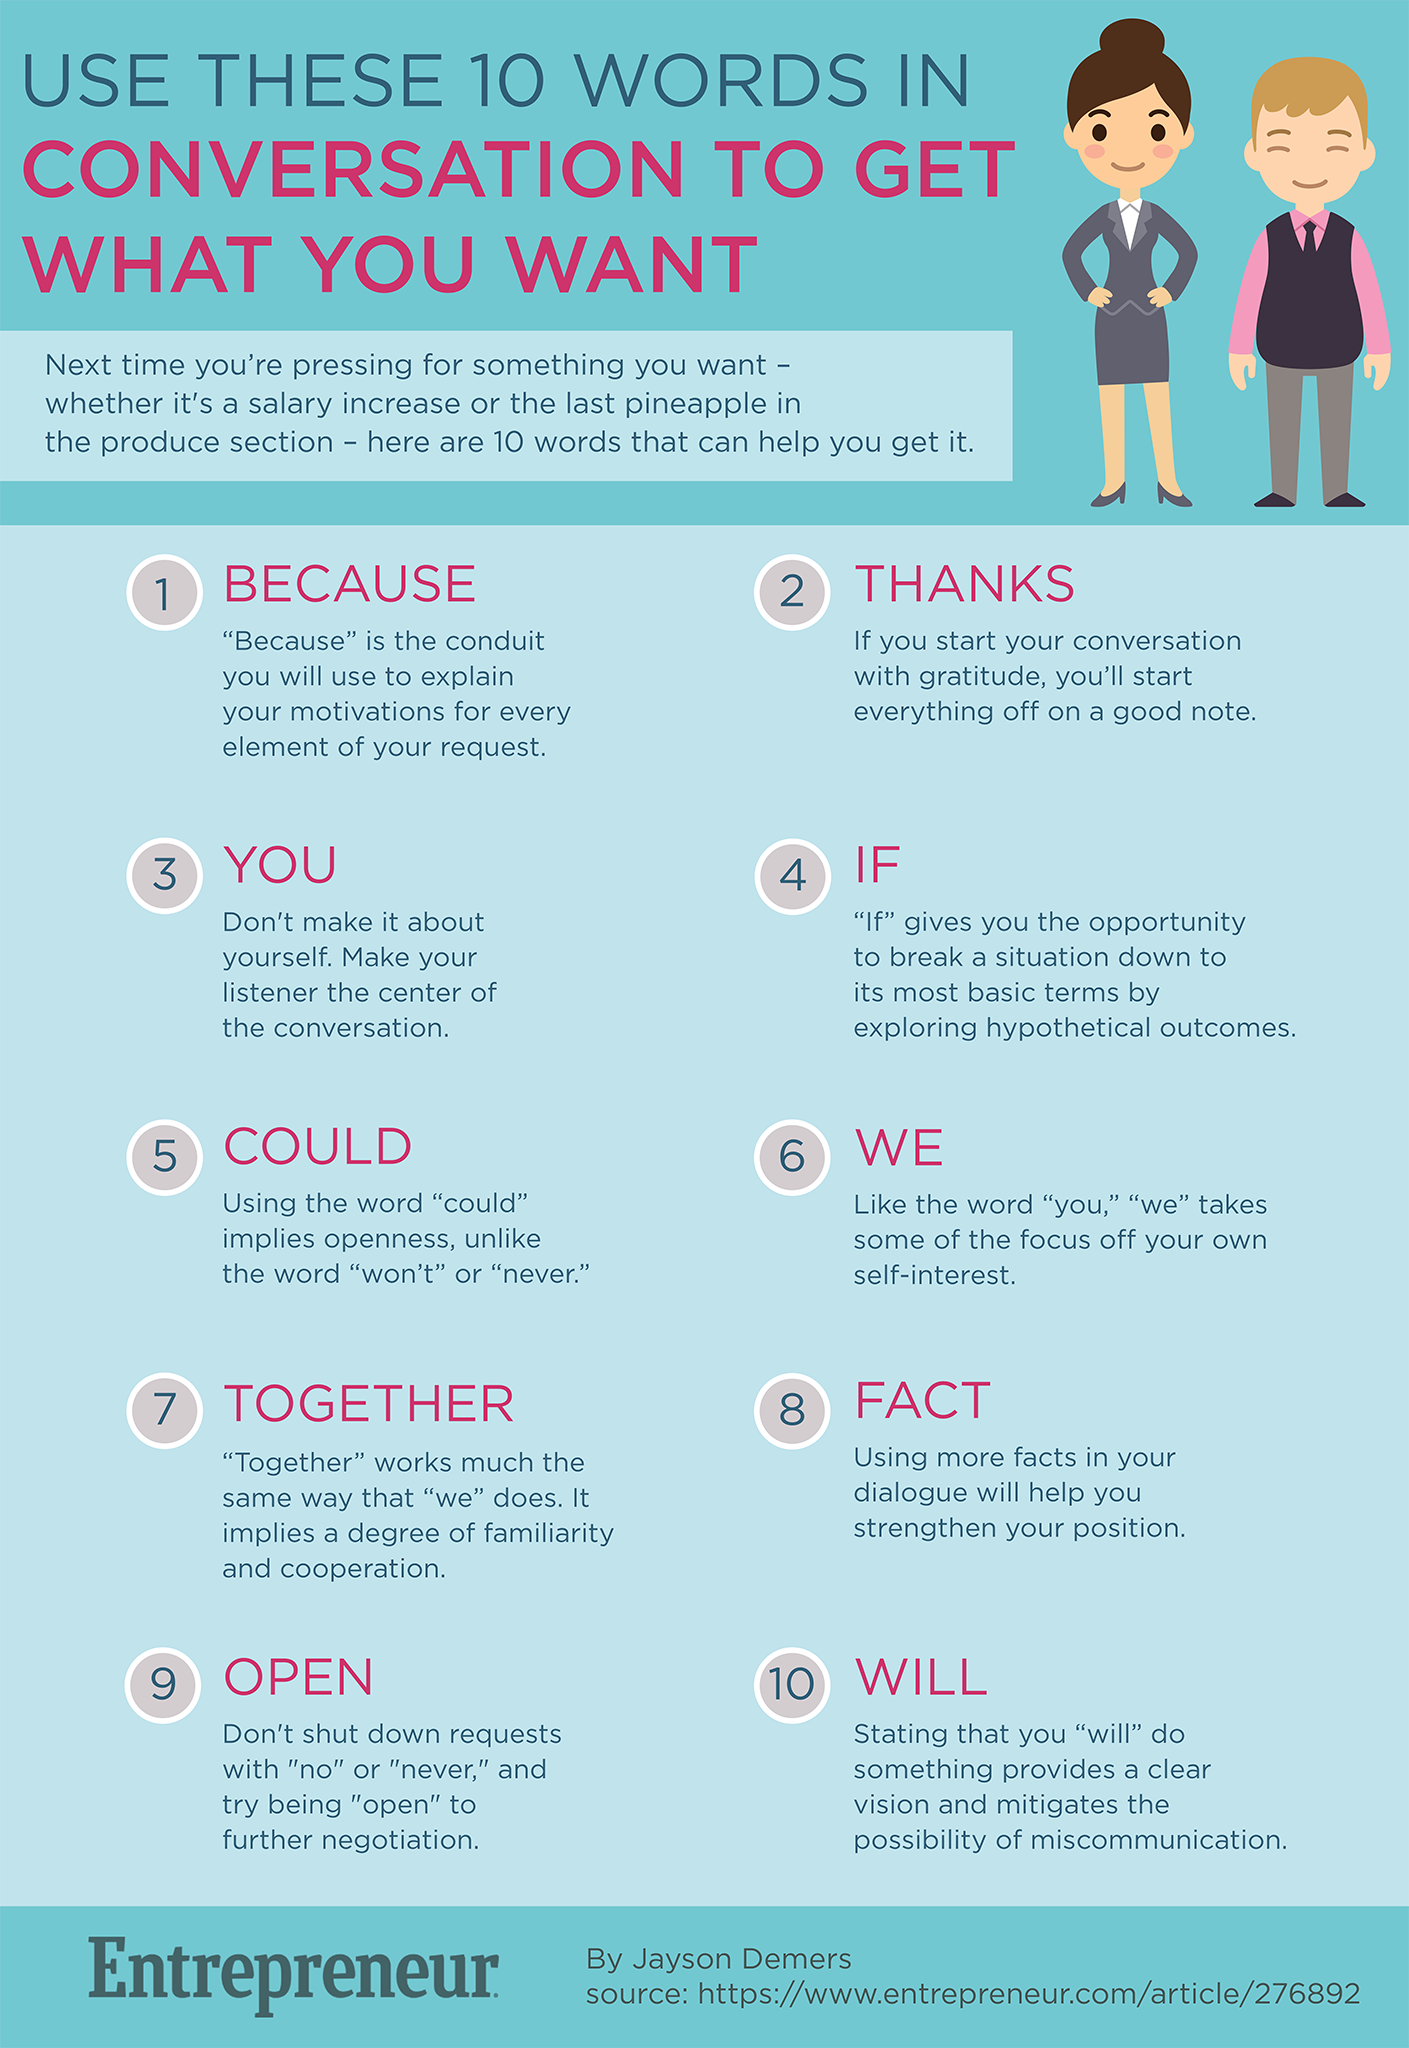 use these 10 words in conversation to get what you want